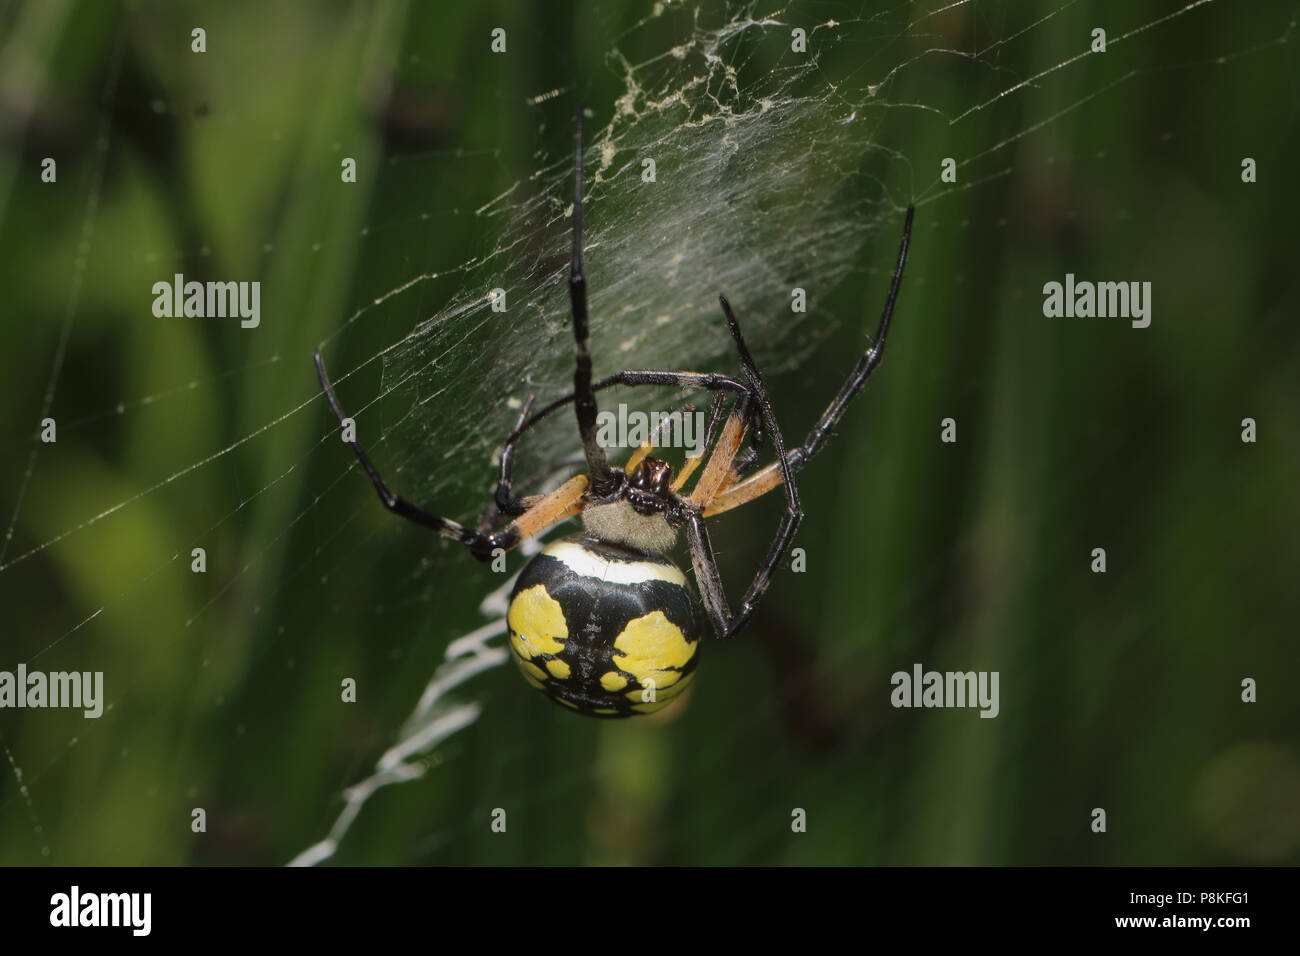 Yellow Garden Spider (Argiope aurantia) August 10th, 2015 USGS EROS Grounds, Minnehaha County, SD - Stock Image